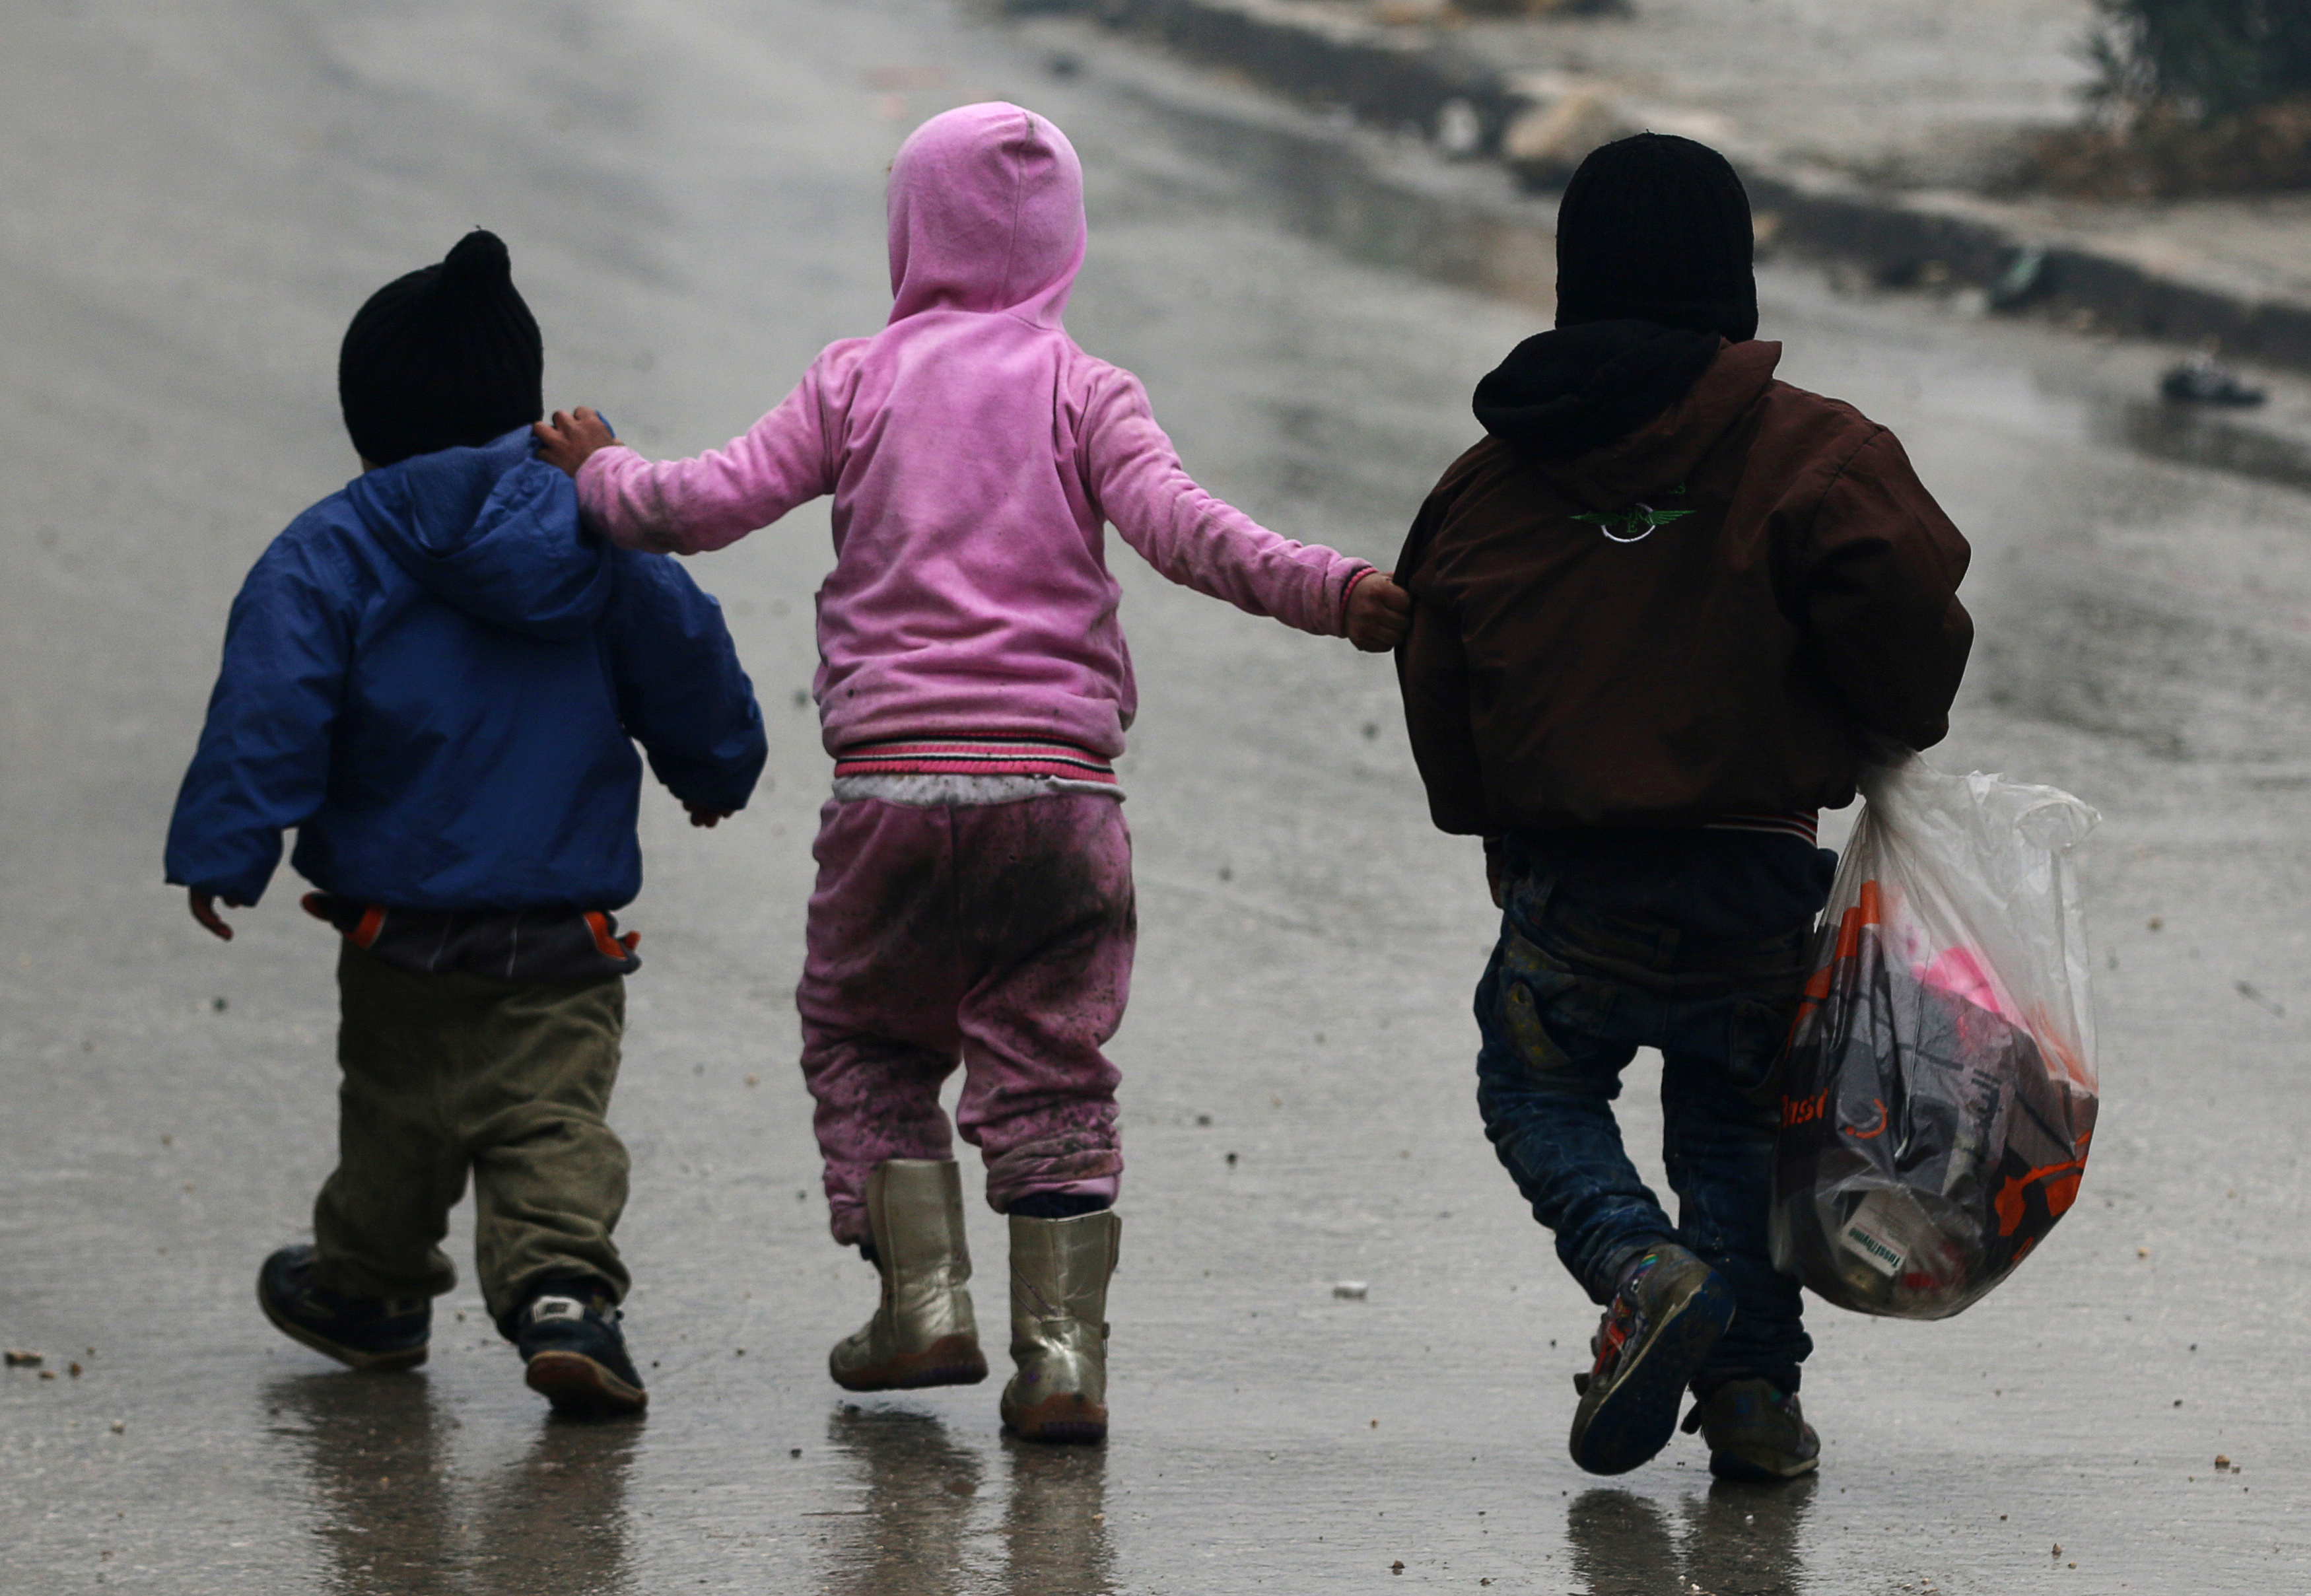 Children walk together as they flee deeper into the remaining rebel-held areas of Aleppo, Syria